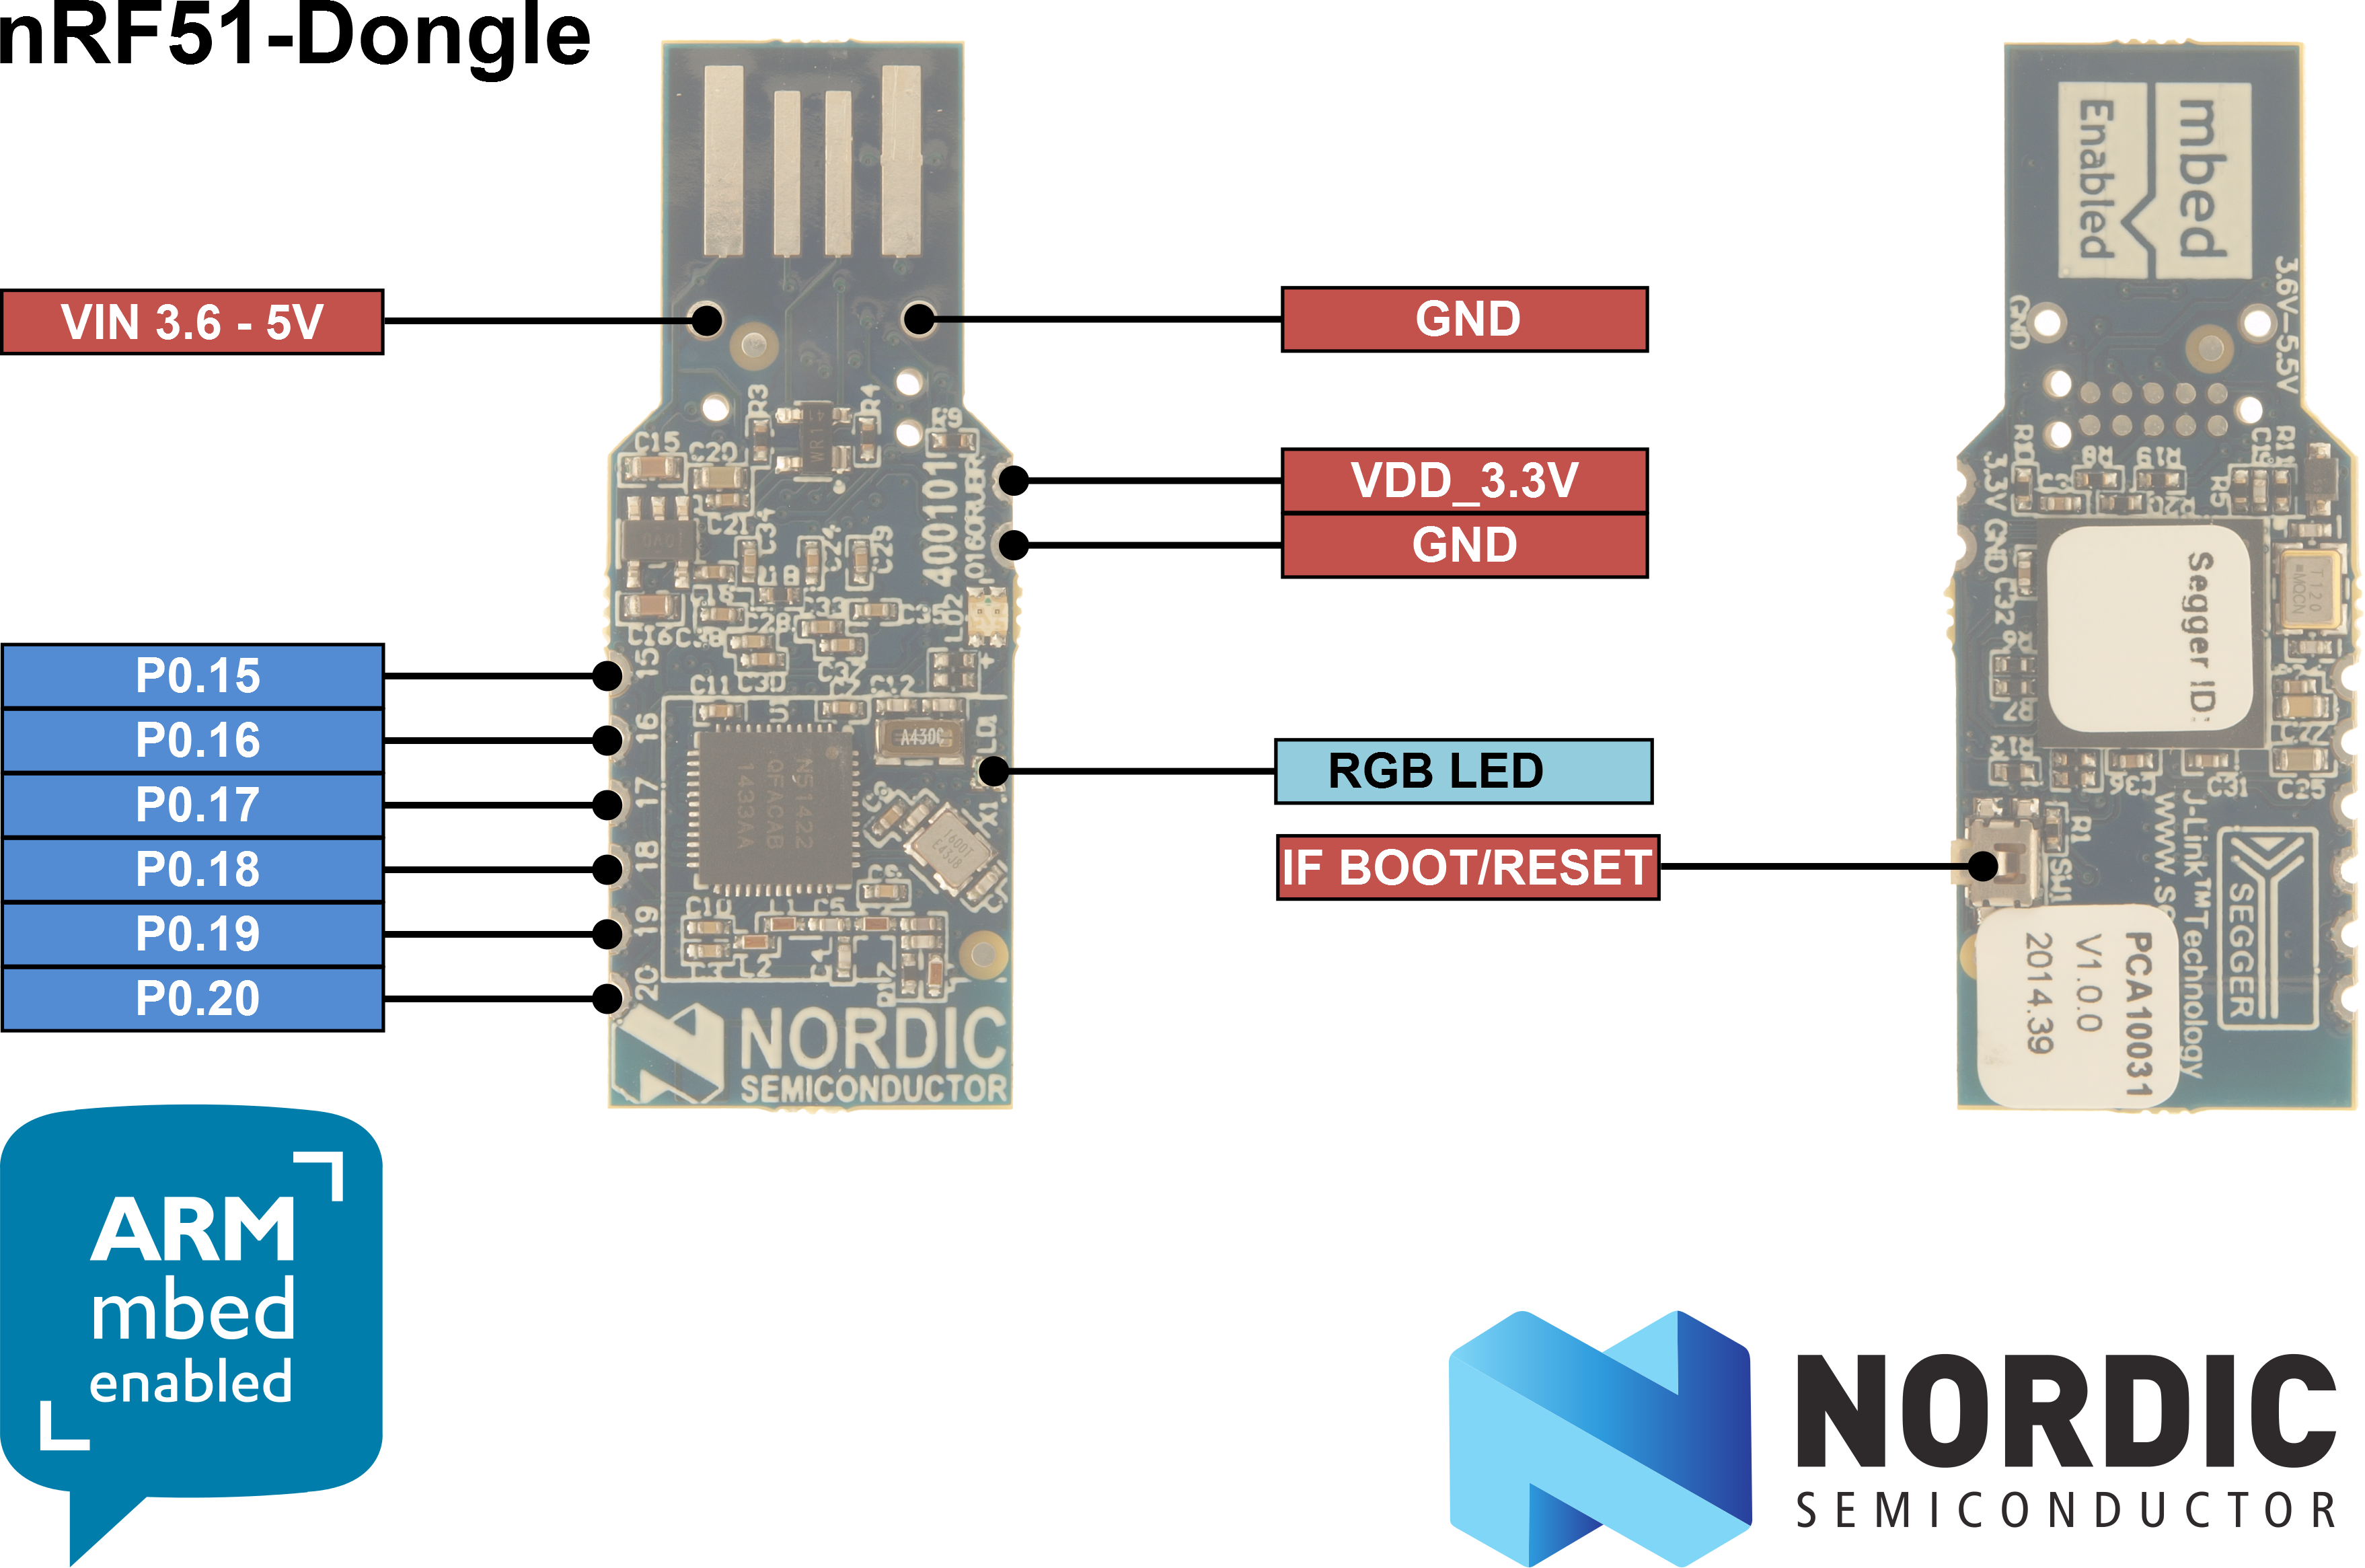 /media/uploads/gamnes/nrf51-dongle_v1.0.0_information_with_logo.png